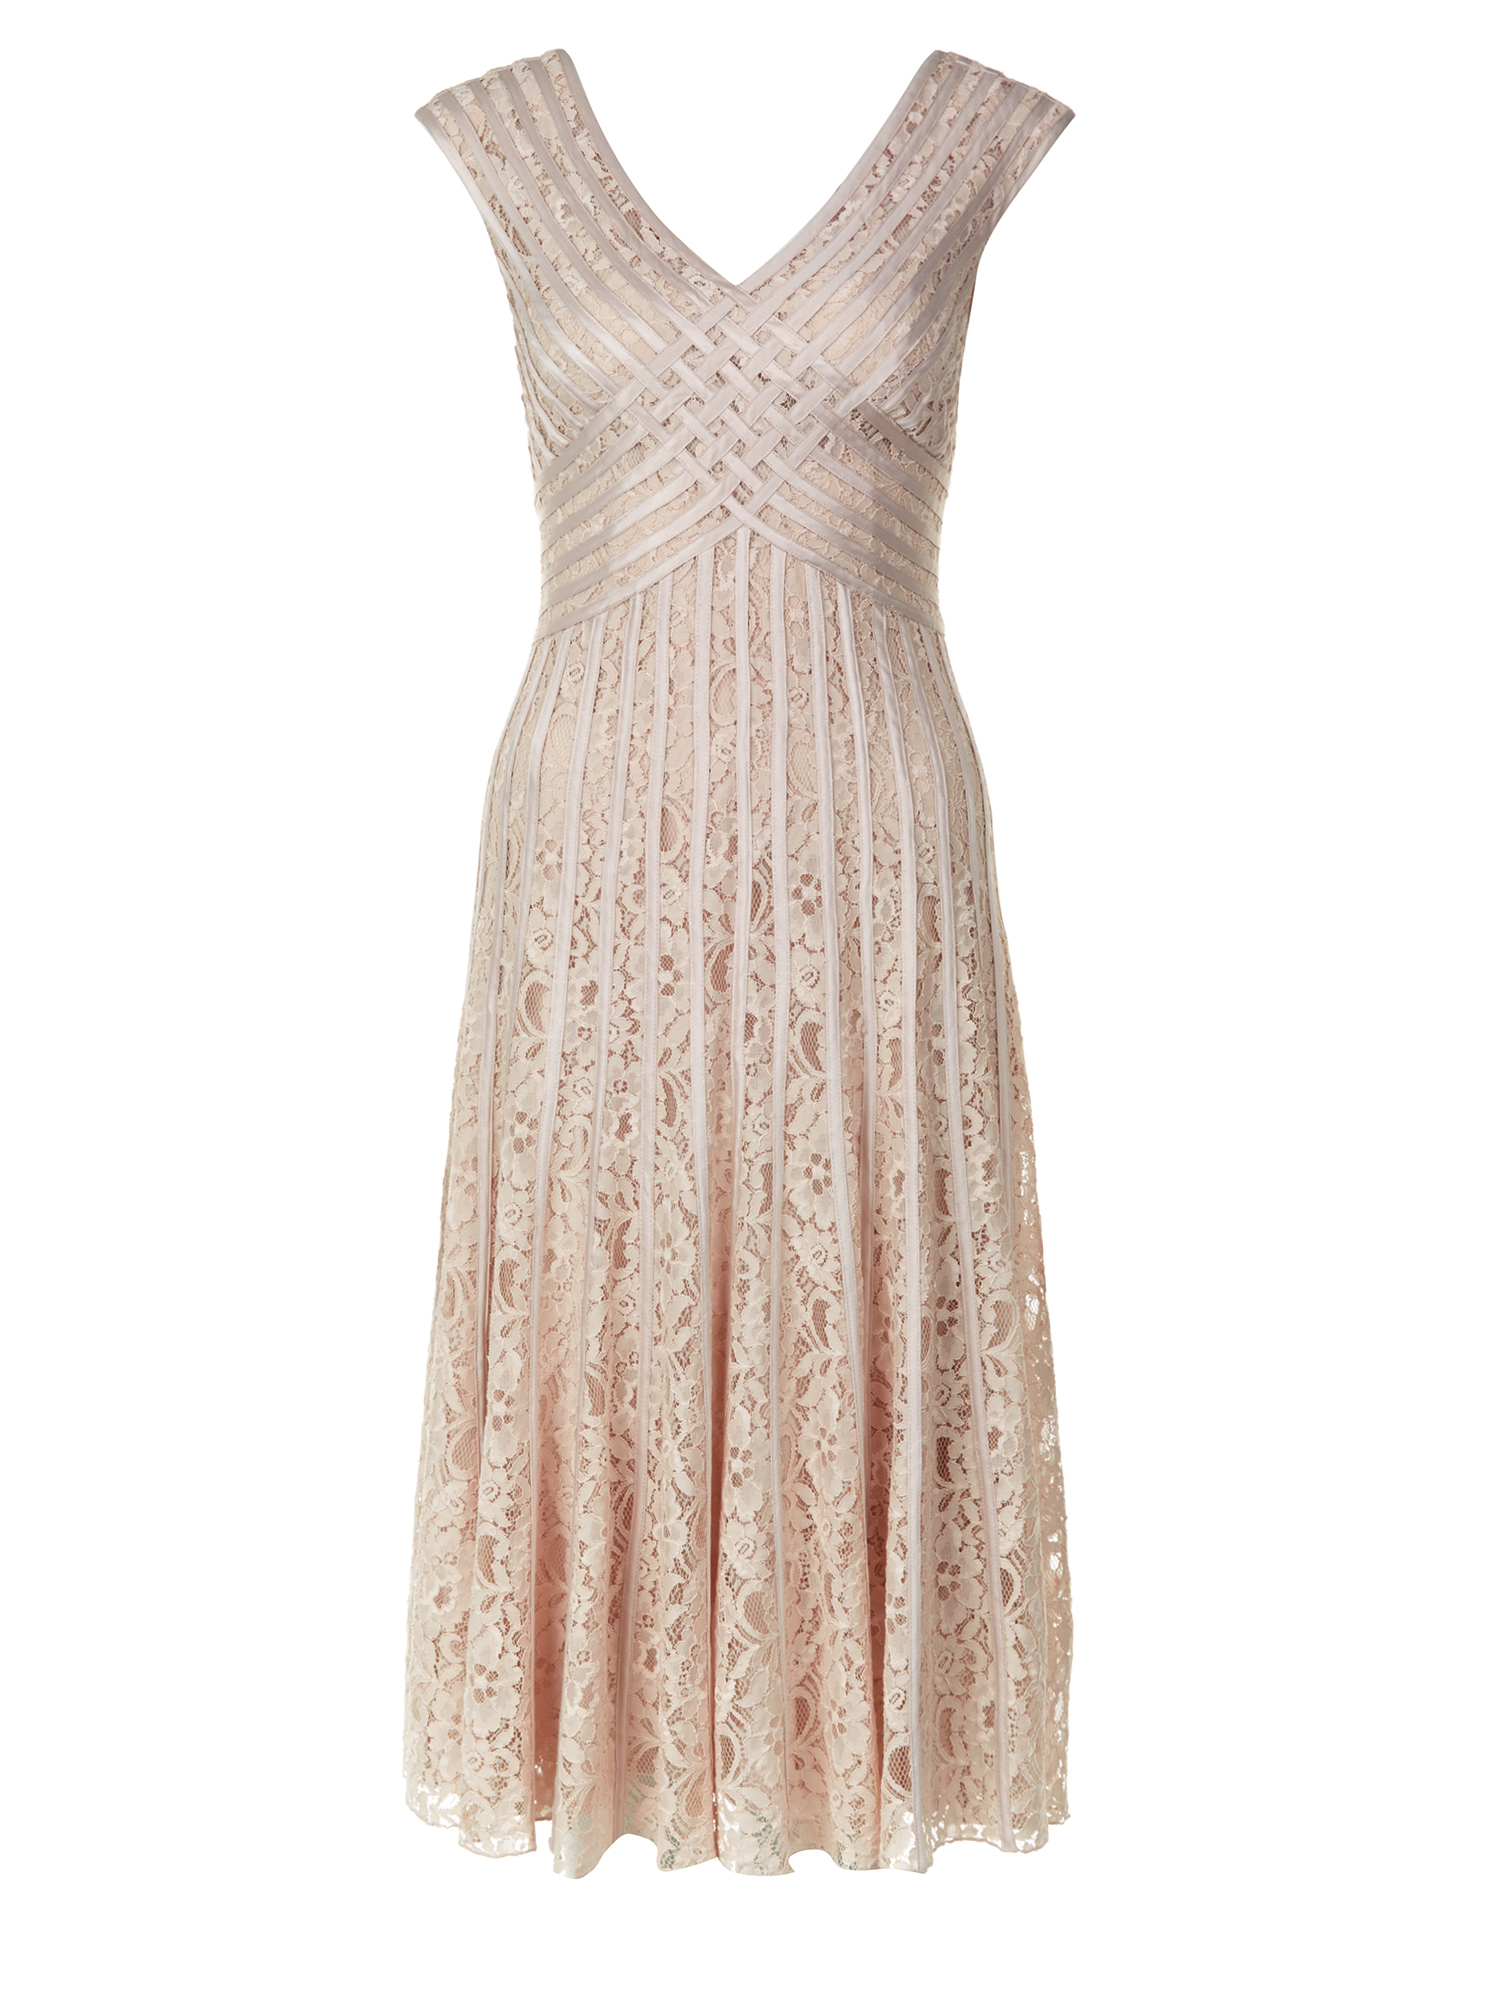 Jacques Vert Dresses For Special Occasions Worth Buying